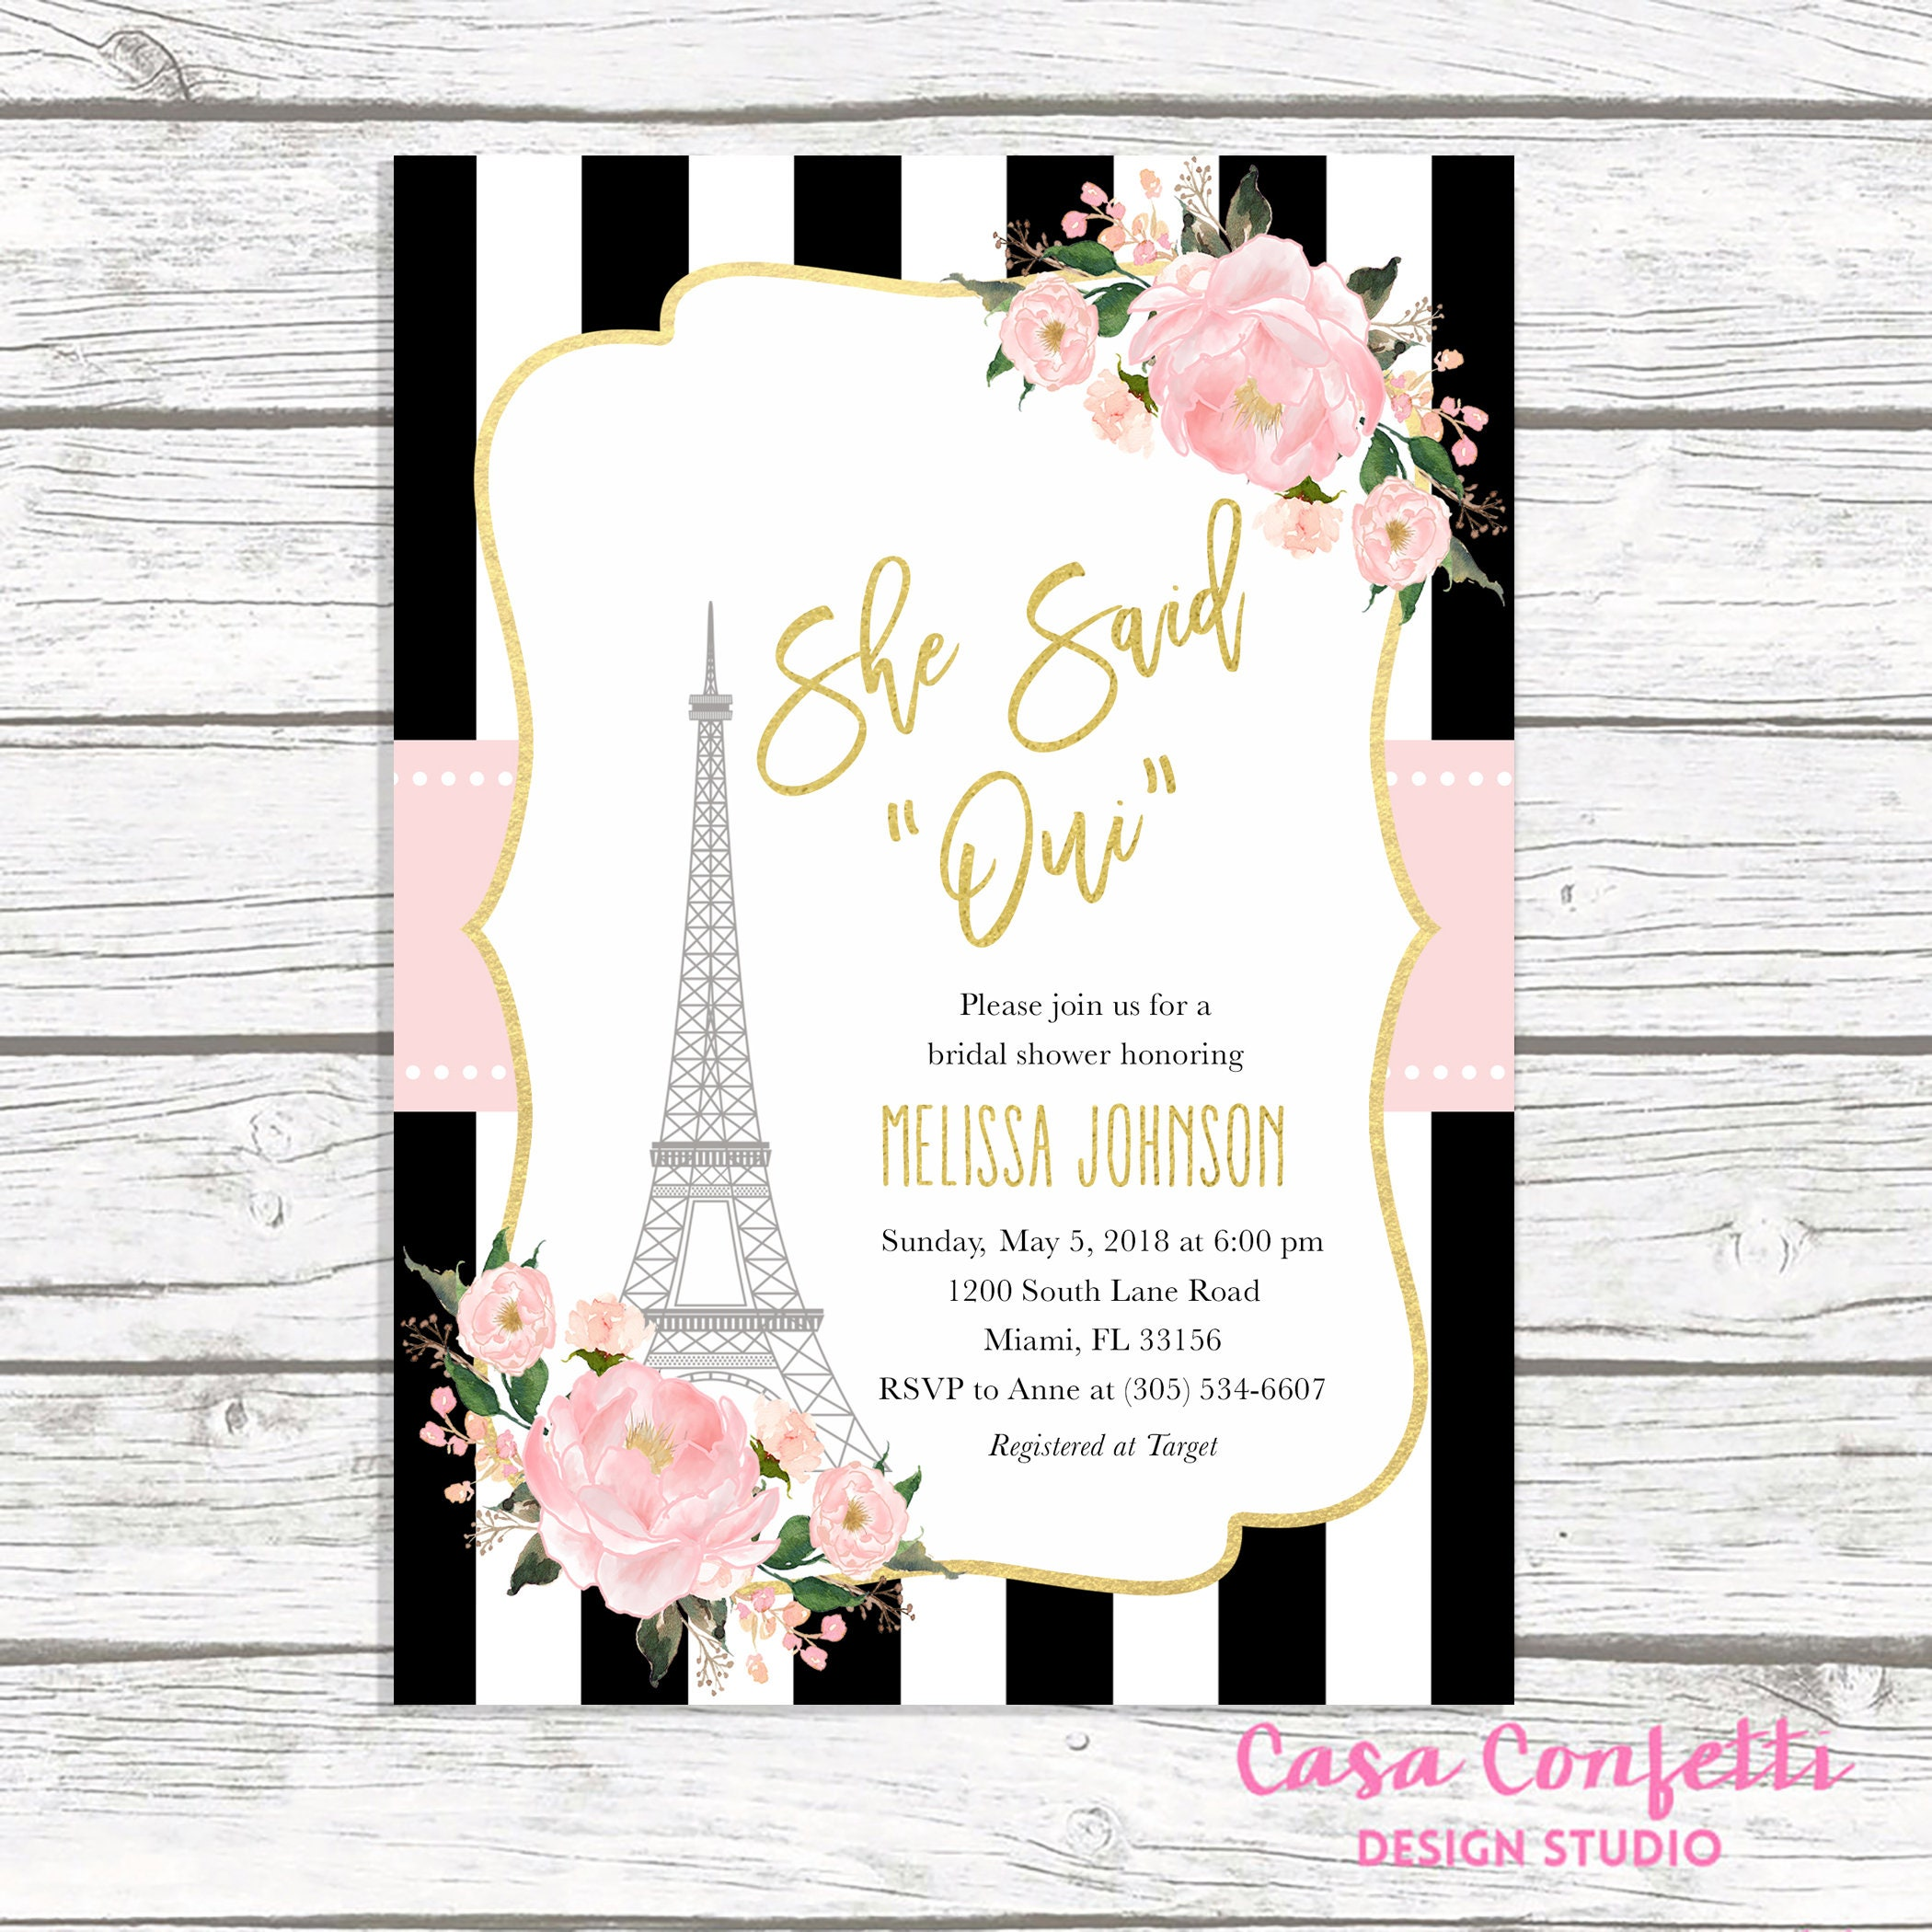 Paris bridal shower invitation french bridal shower invitation paris bridal shower invitation french bridal shower invitation eiffel tower bridal shower invitation she said oui parisian invite filmwisefo